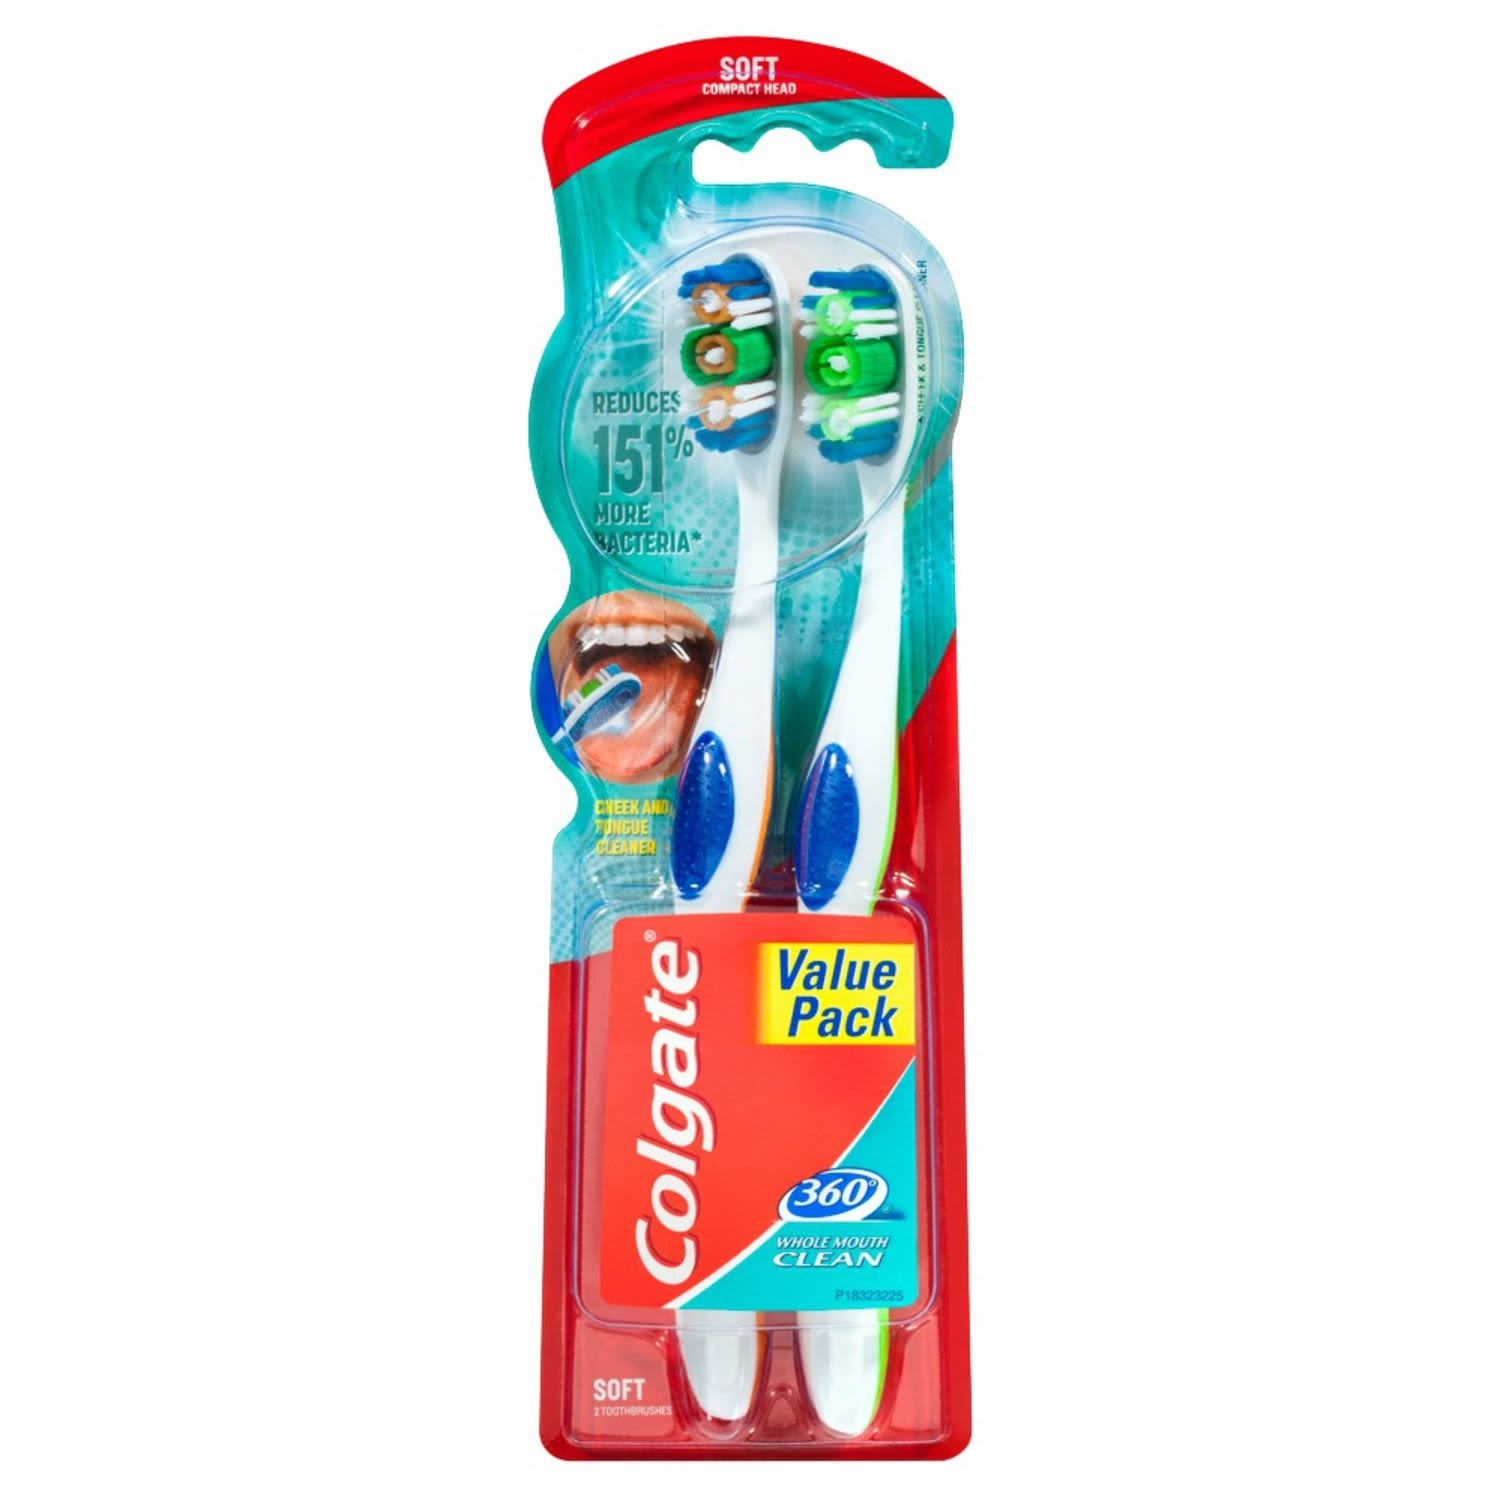 Colgate 360 Degrees Whole Mouth Clean Compact Head Toothbrush Soft, 2 Each